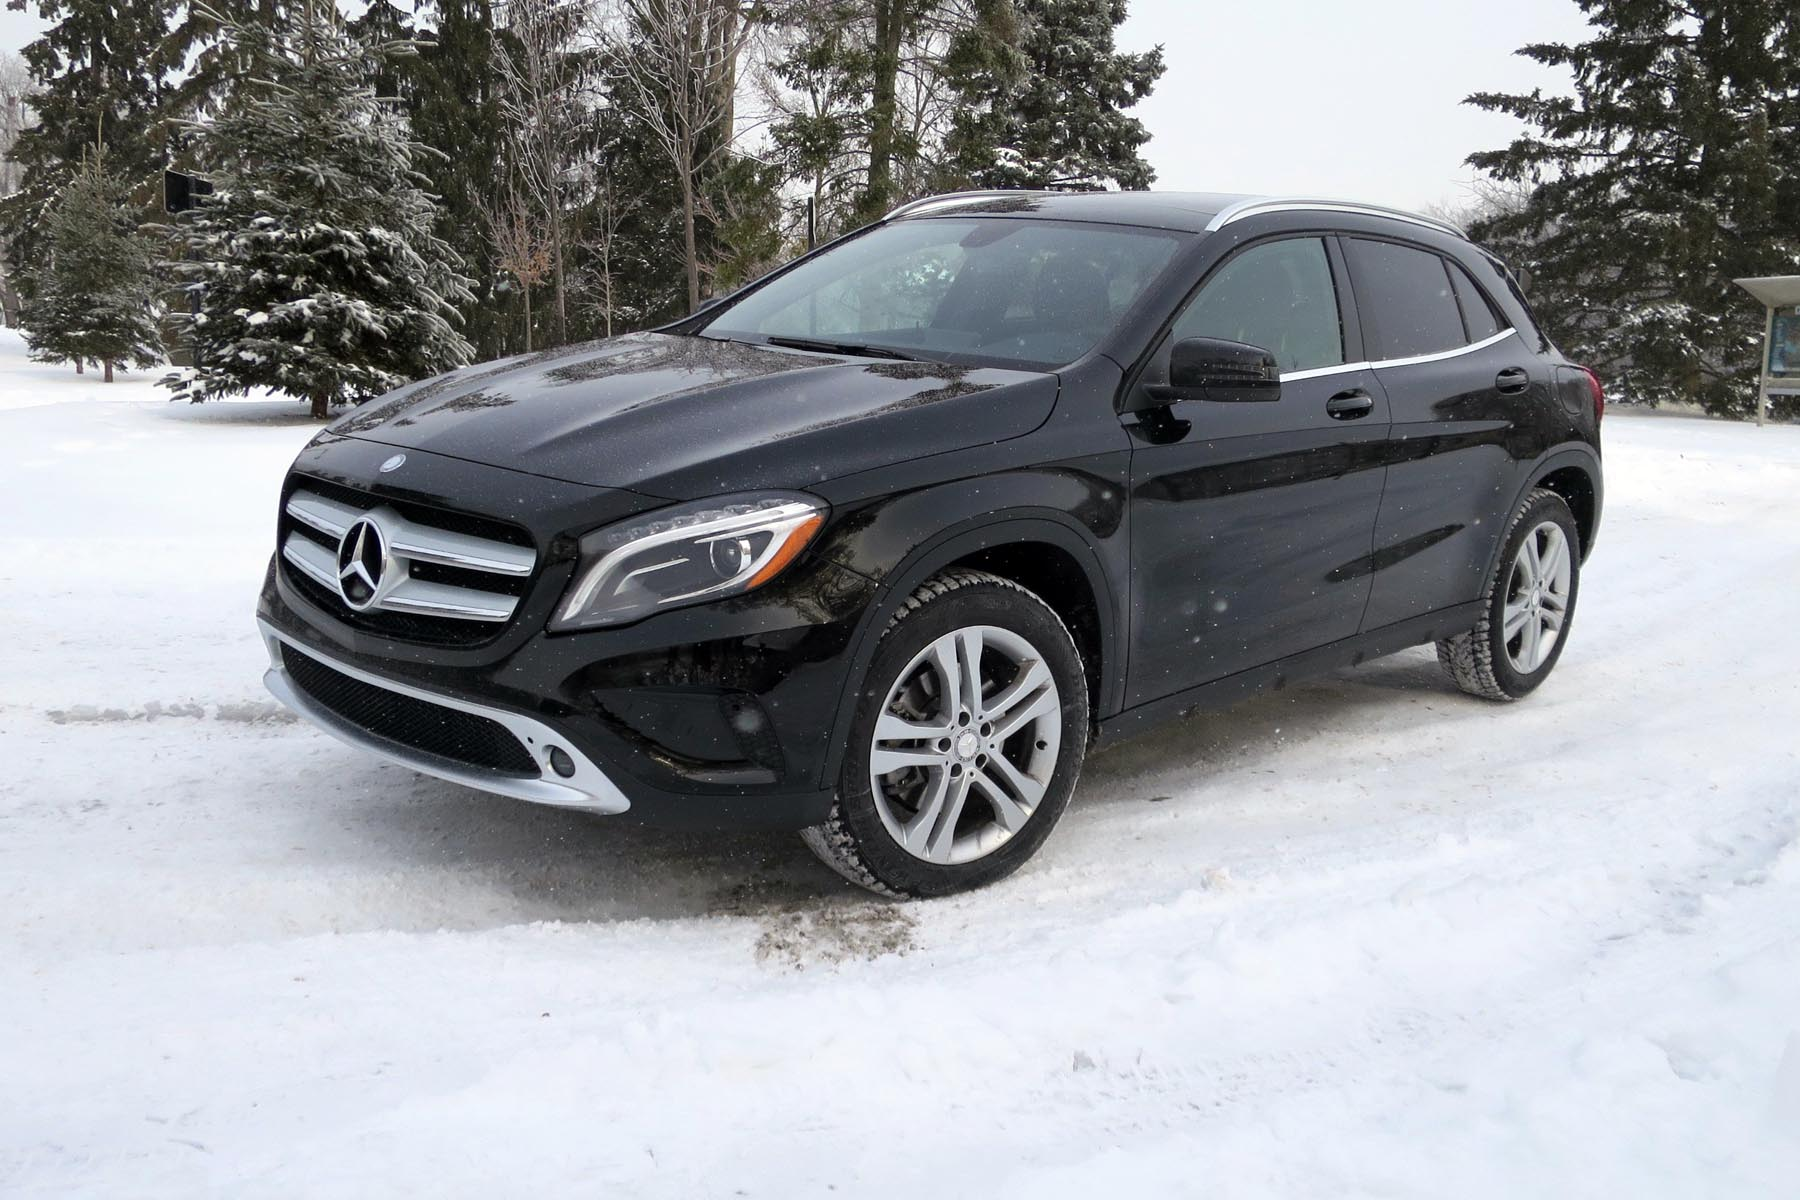 2015 mercedes benz gla 250 4matic ForMercedes Benz Gla 250 4matic